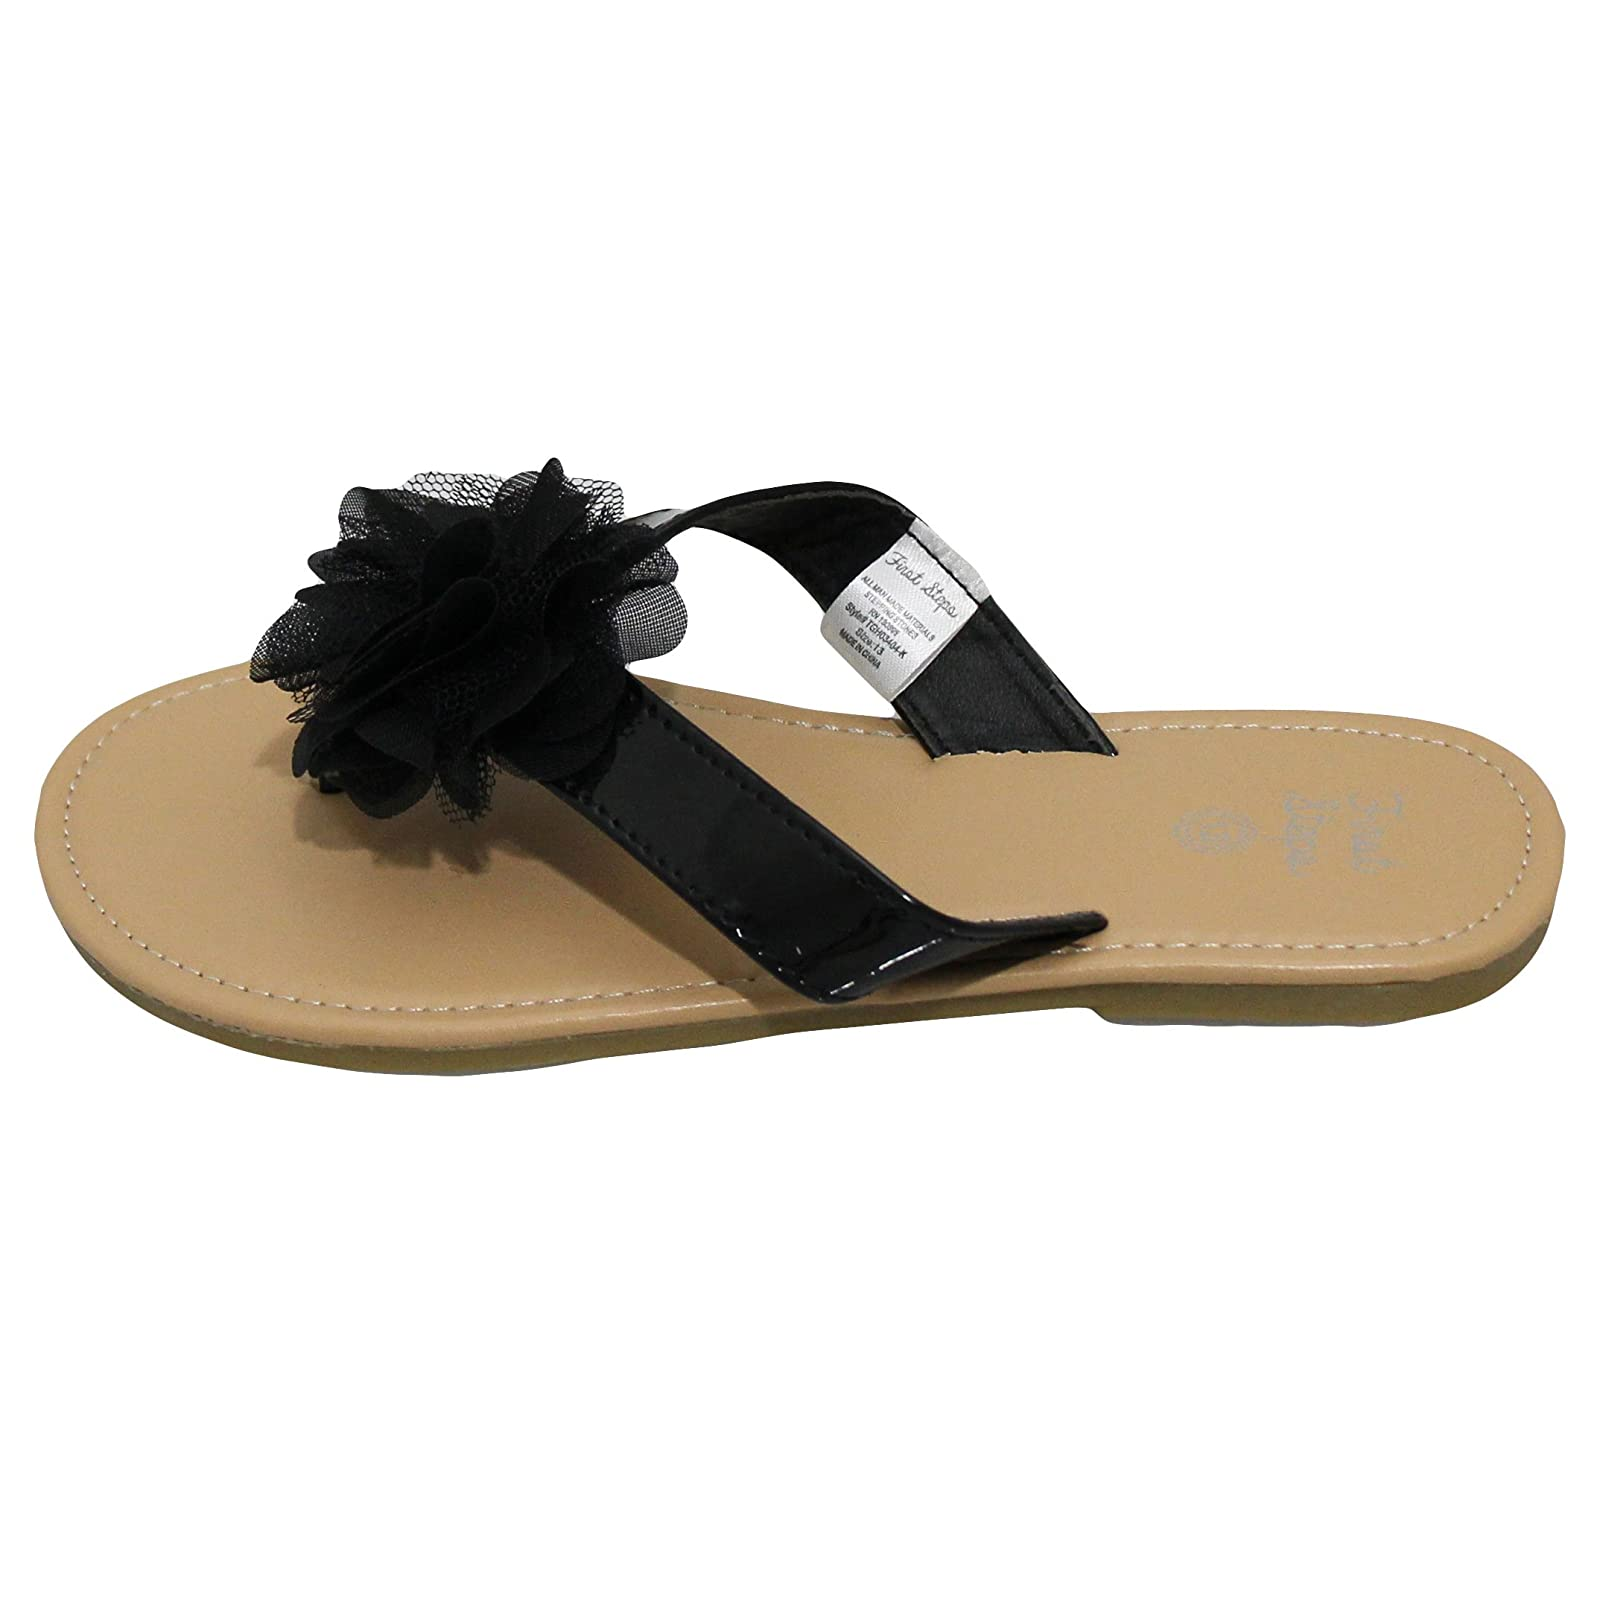 93bb7dcb8bff0 HQ Images of Stepping Stones Girls Black Flip Flop Thong Sandals with  Chiffon Ruffle Flower Hardsole Sandals-Size 12